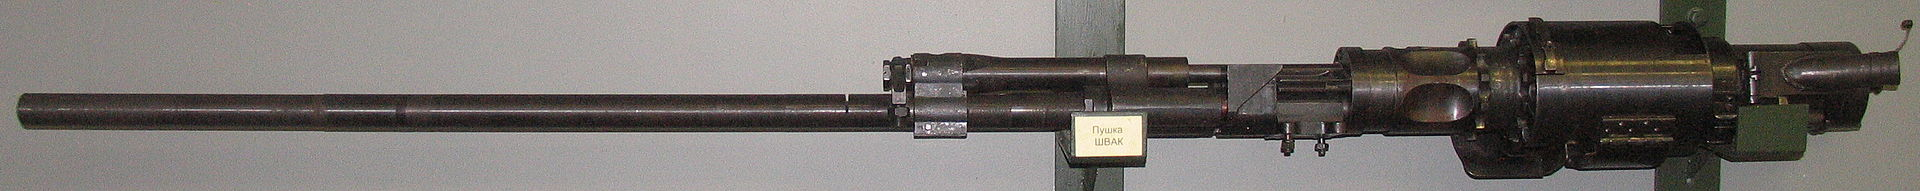 thumb; Iiirht] ;; ShVAK 20mm Cannon